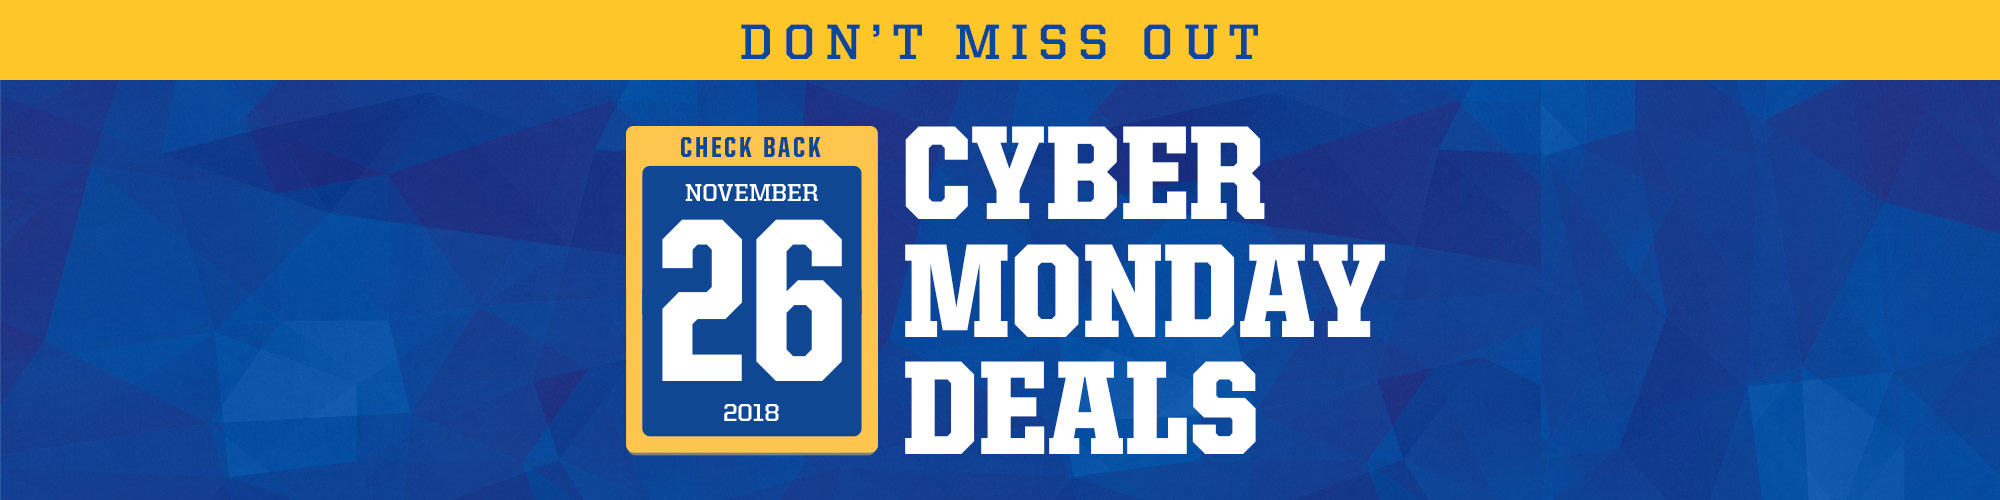 Check Back November 26, 2018 for more Cyber Monday Deals.